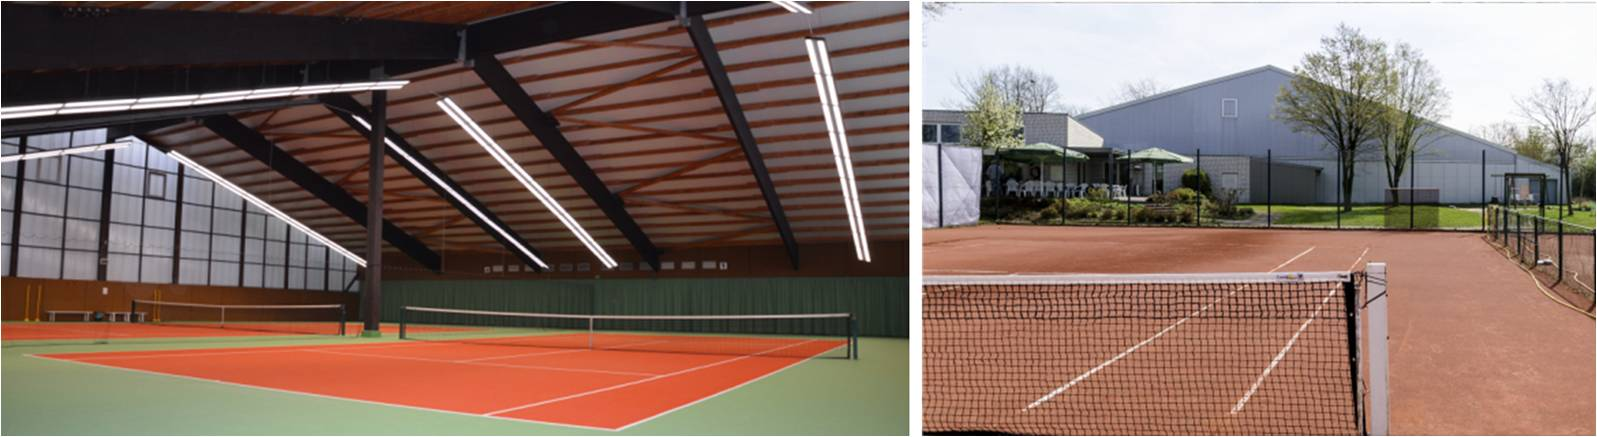 LED Distribution | Projects | Indoor Tennis Center (TC Havixbeck e.V.) | Havixbeck, Germany